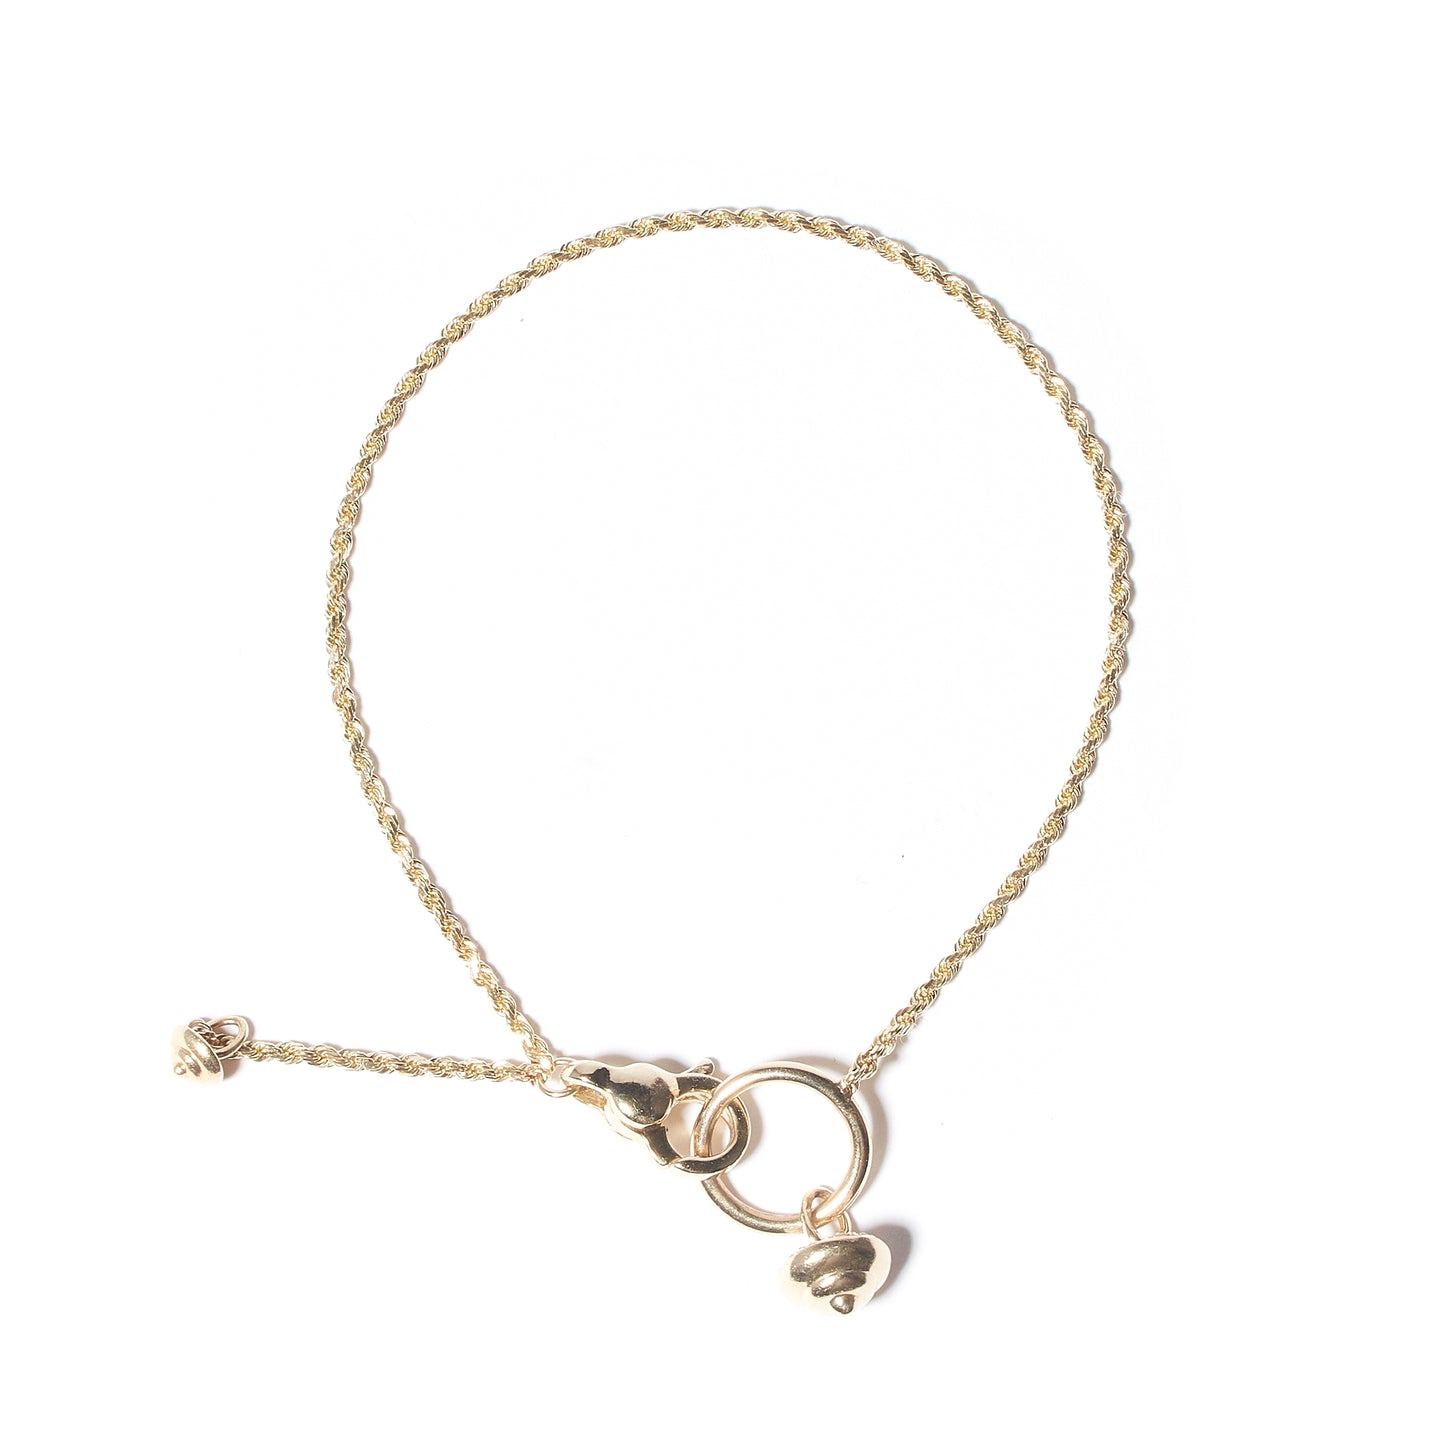 Evolve Single Charm Bracelet - Diamond